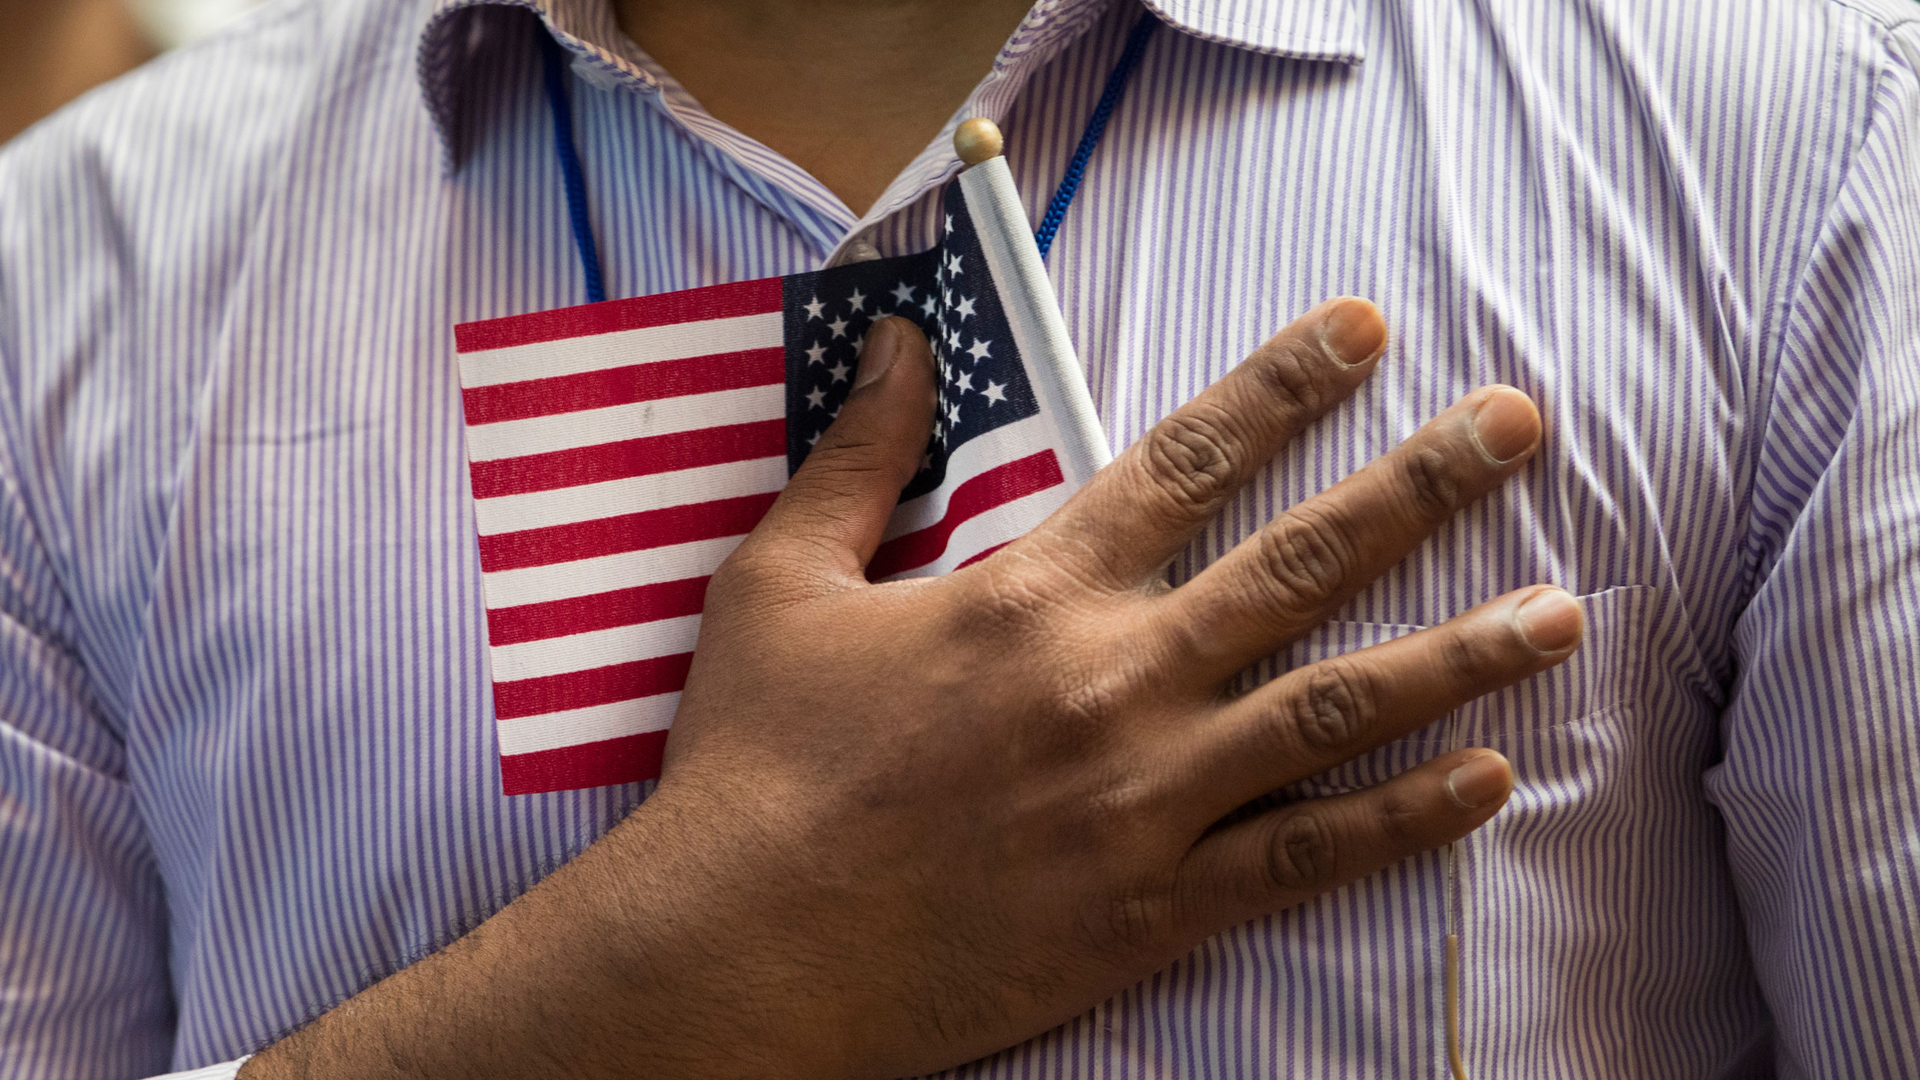 A new U.S. citizen holds a flag to his chest during the Pledge of Allegiance during a naturalization ceremony at the New York Public Library, July 3, 2018, in New York City. (Drew Angerer/Getty Images)